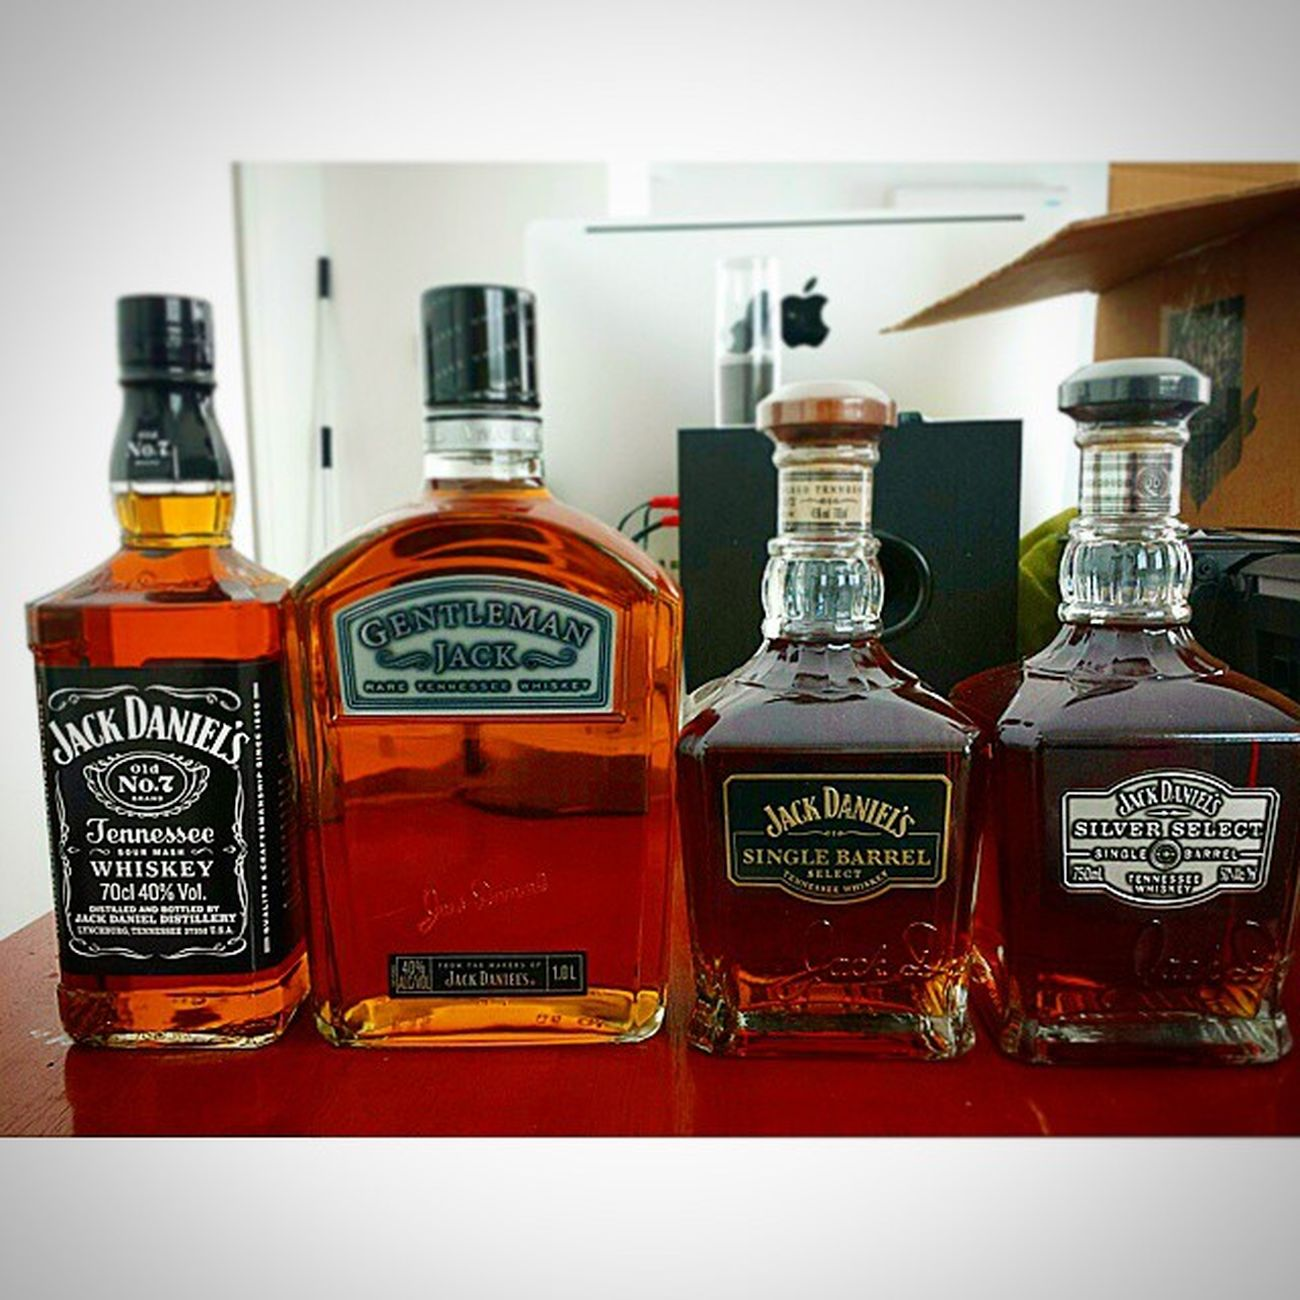 Jackdaniels Gentlemanjack Singlebarrel Silver  bourbonwhiskeycollectiondrinkamericanwhiskey